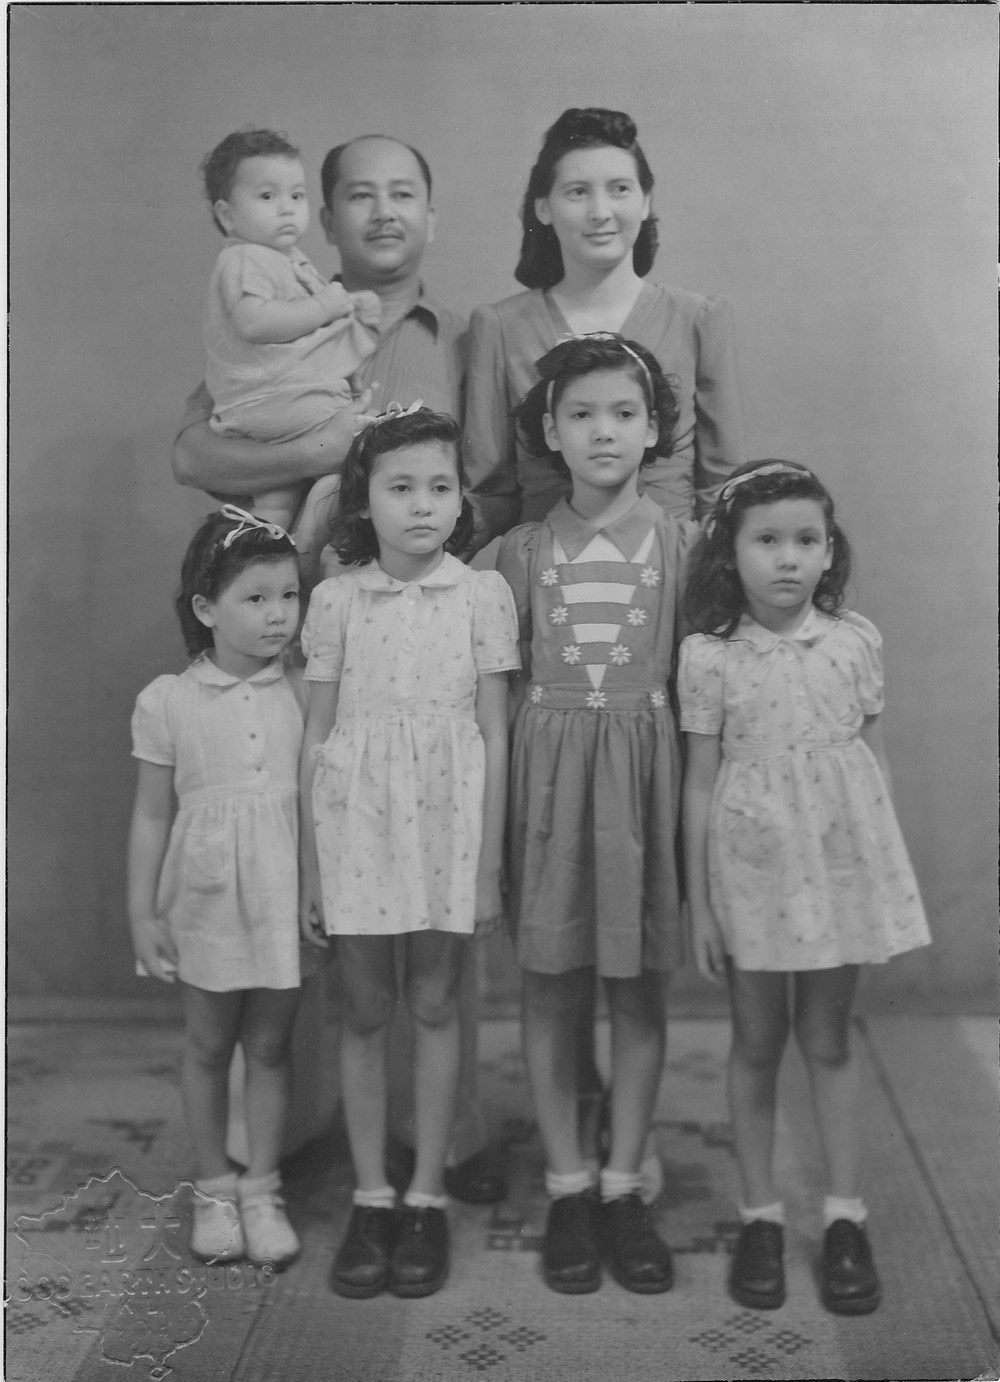 De Souza family circa 1946 - back row: Peter (babe in arms), Herman (Jnr), Molly; front row: Fleur,  Alethea, Claire and Valerie